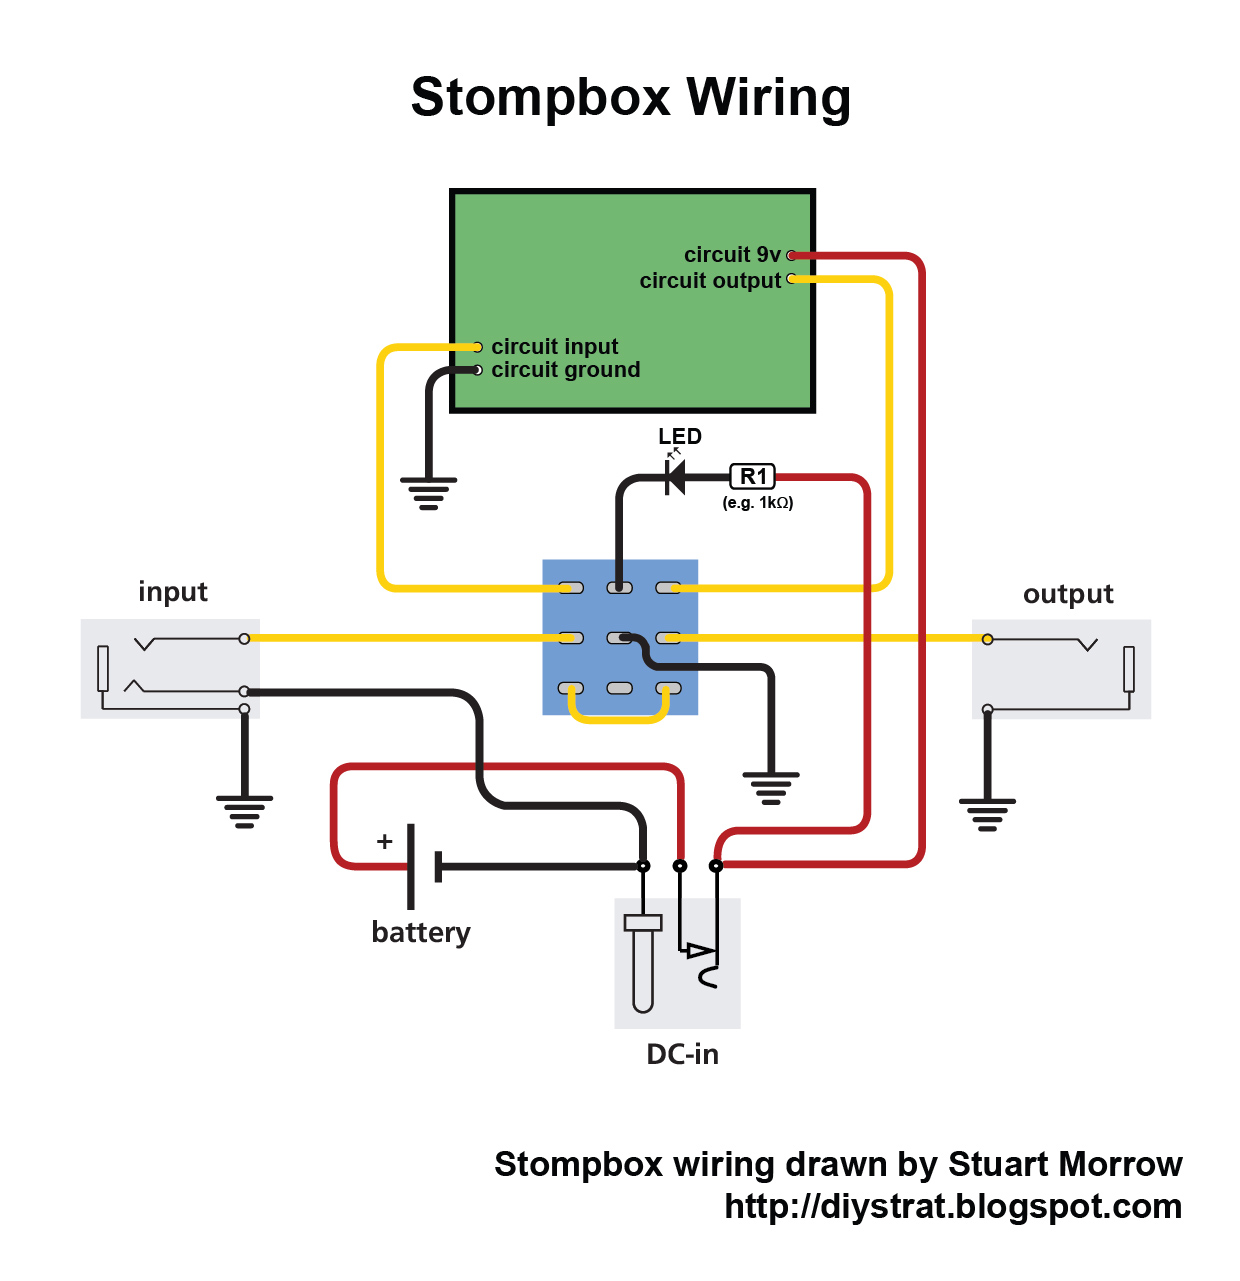 Selector Switch Wiring Diagram Pedal Reinvent Your Battery How To Wire Up A Stomp Box Effects Diy Strat And Other Rh Diystrat Blogspot Com Hoa